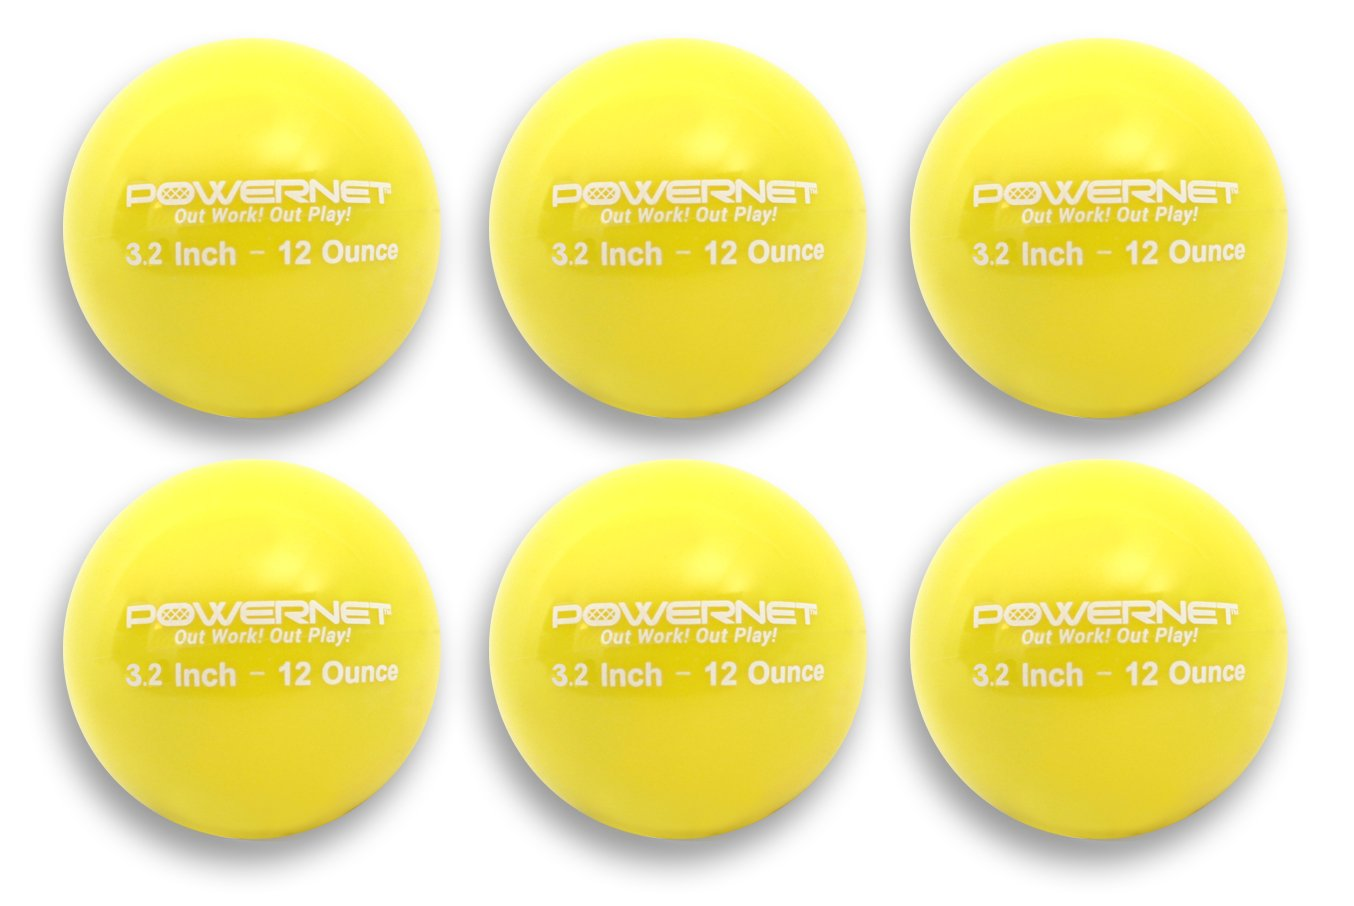 PowerNet 3.2'' Weighted Hitting Batting Training Balls (6 Pack) | 12 oz Yellow | Build Strength and Muscle | Improve Technique and Form | Softball Size | Enhance Hand-Eye Coordination by PowerNet